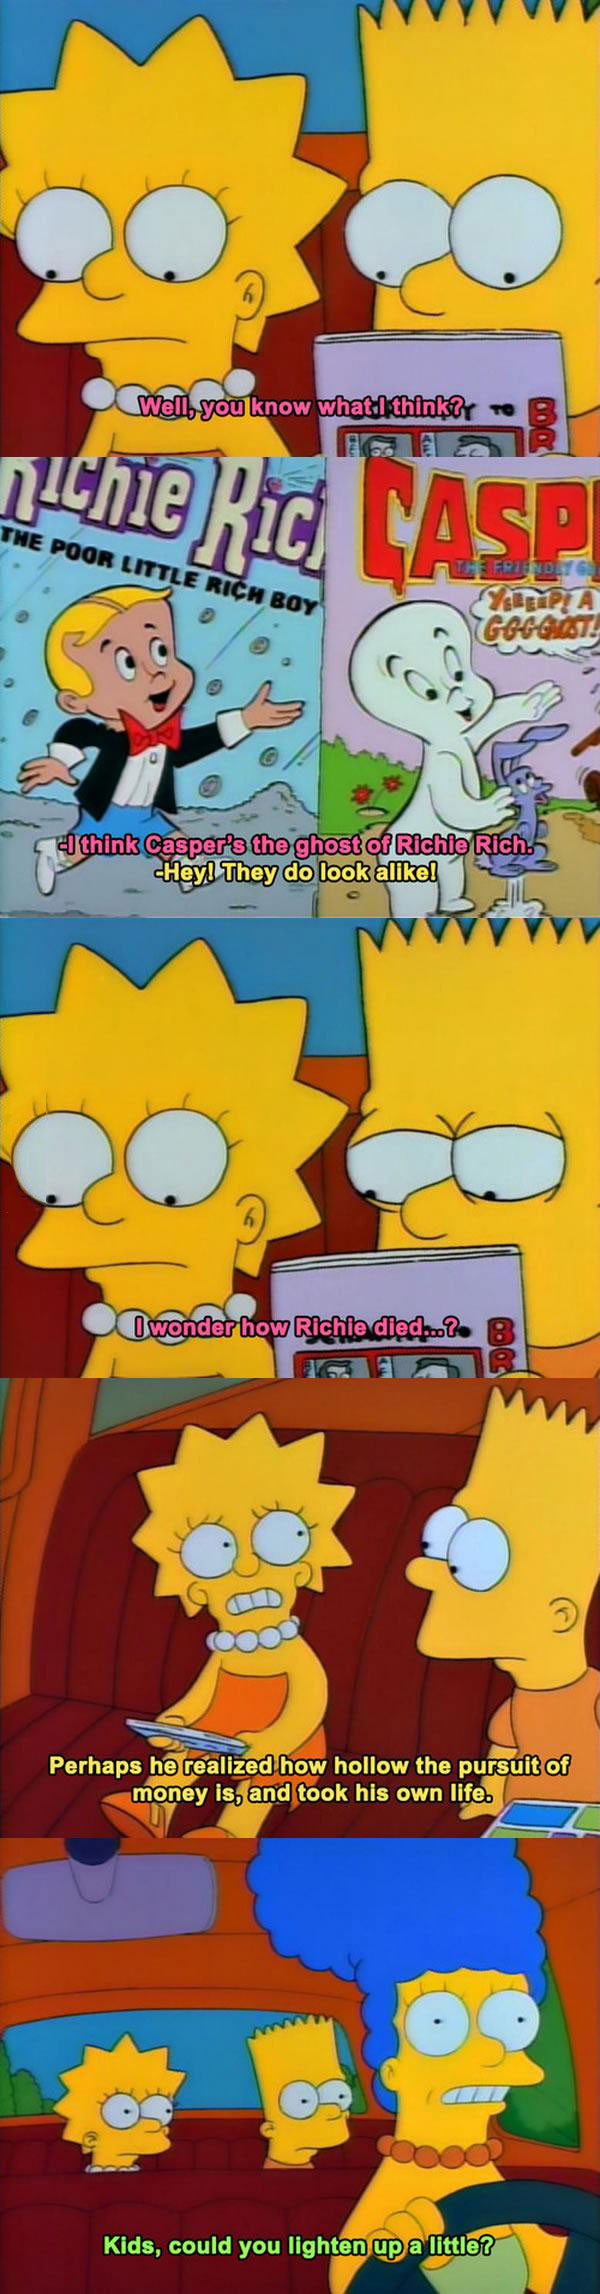 bart and lisa get really deep about richie rich and casper the friendly ghost